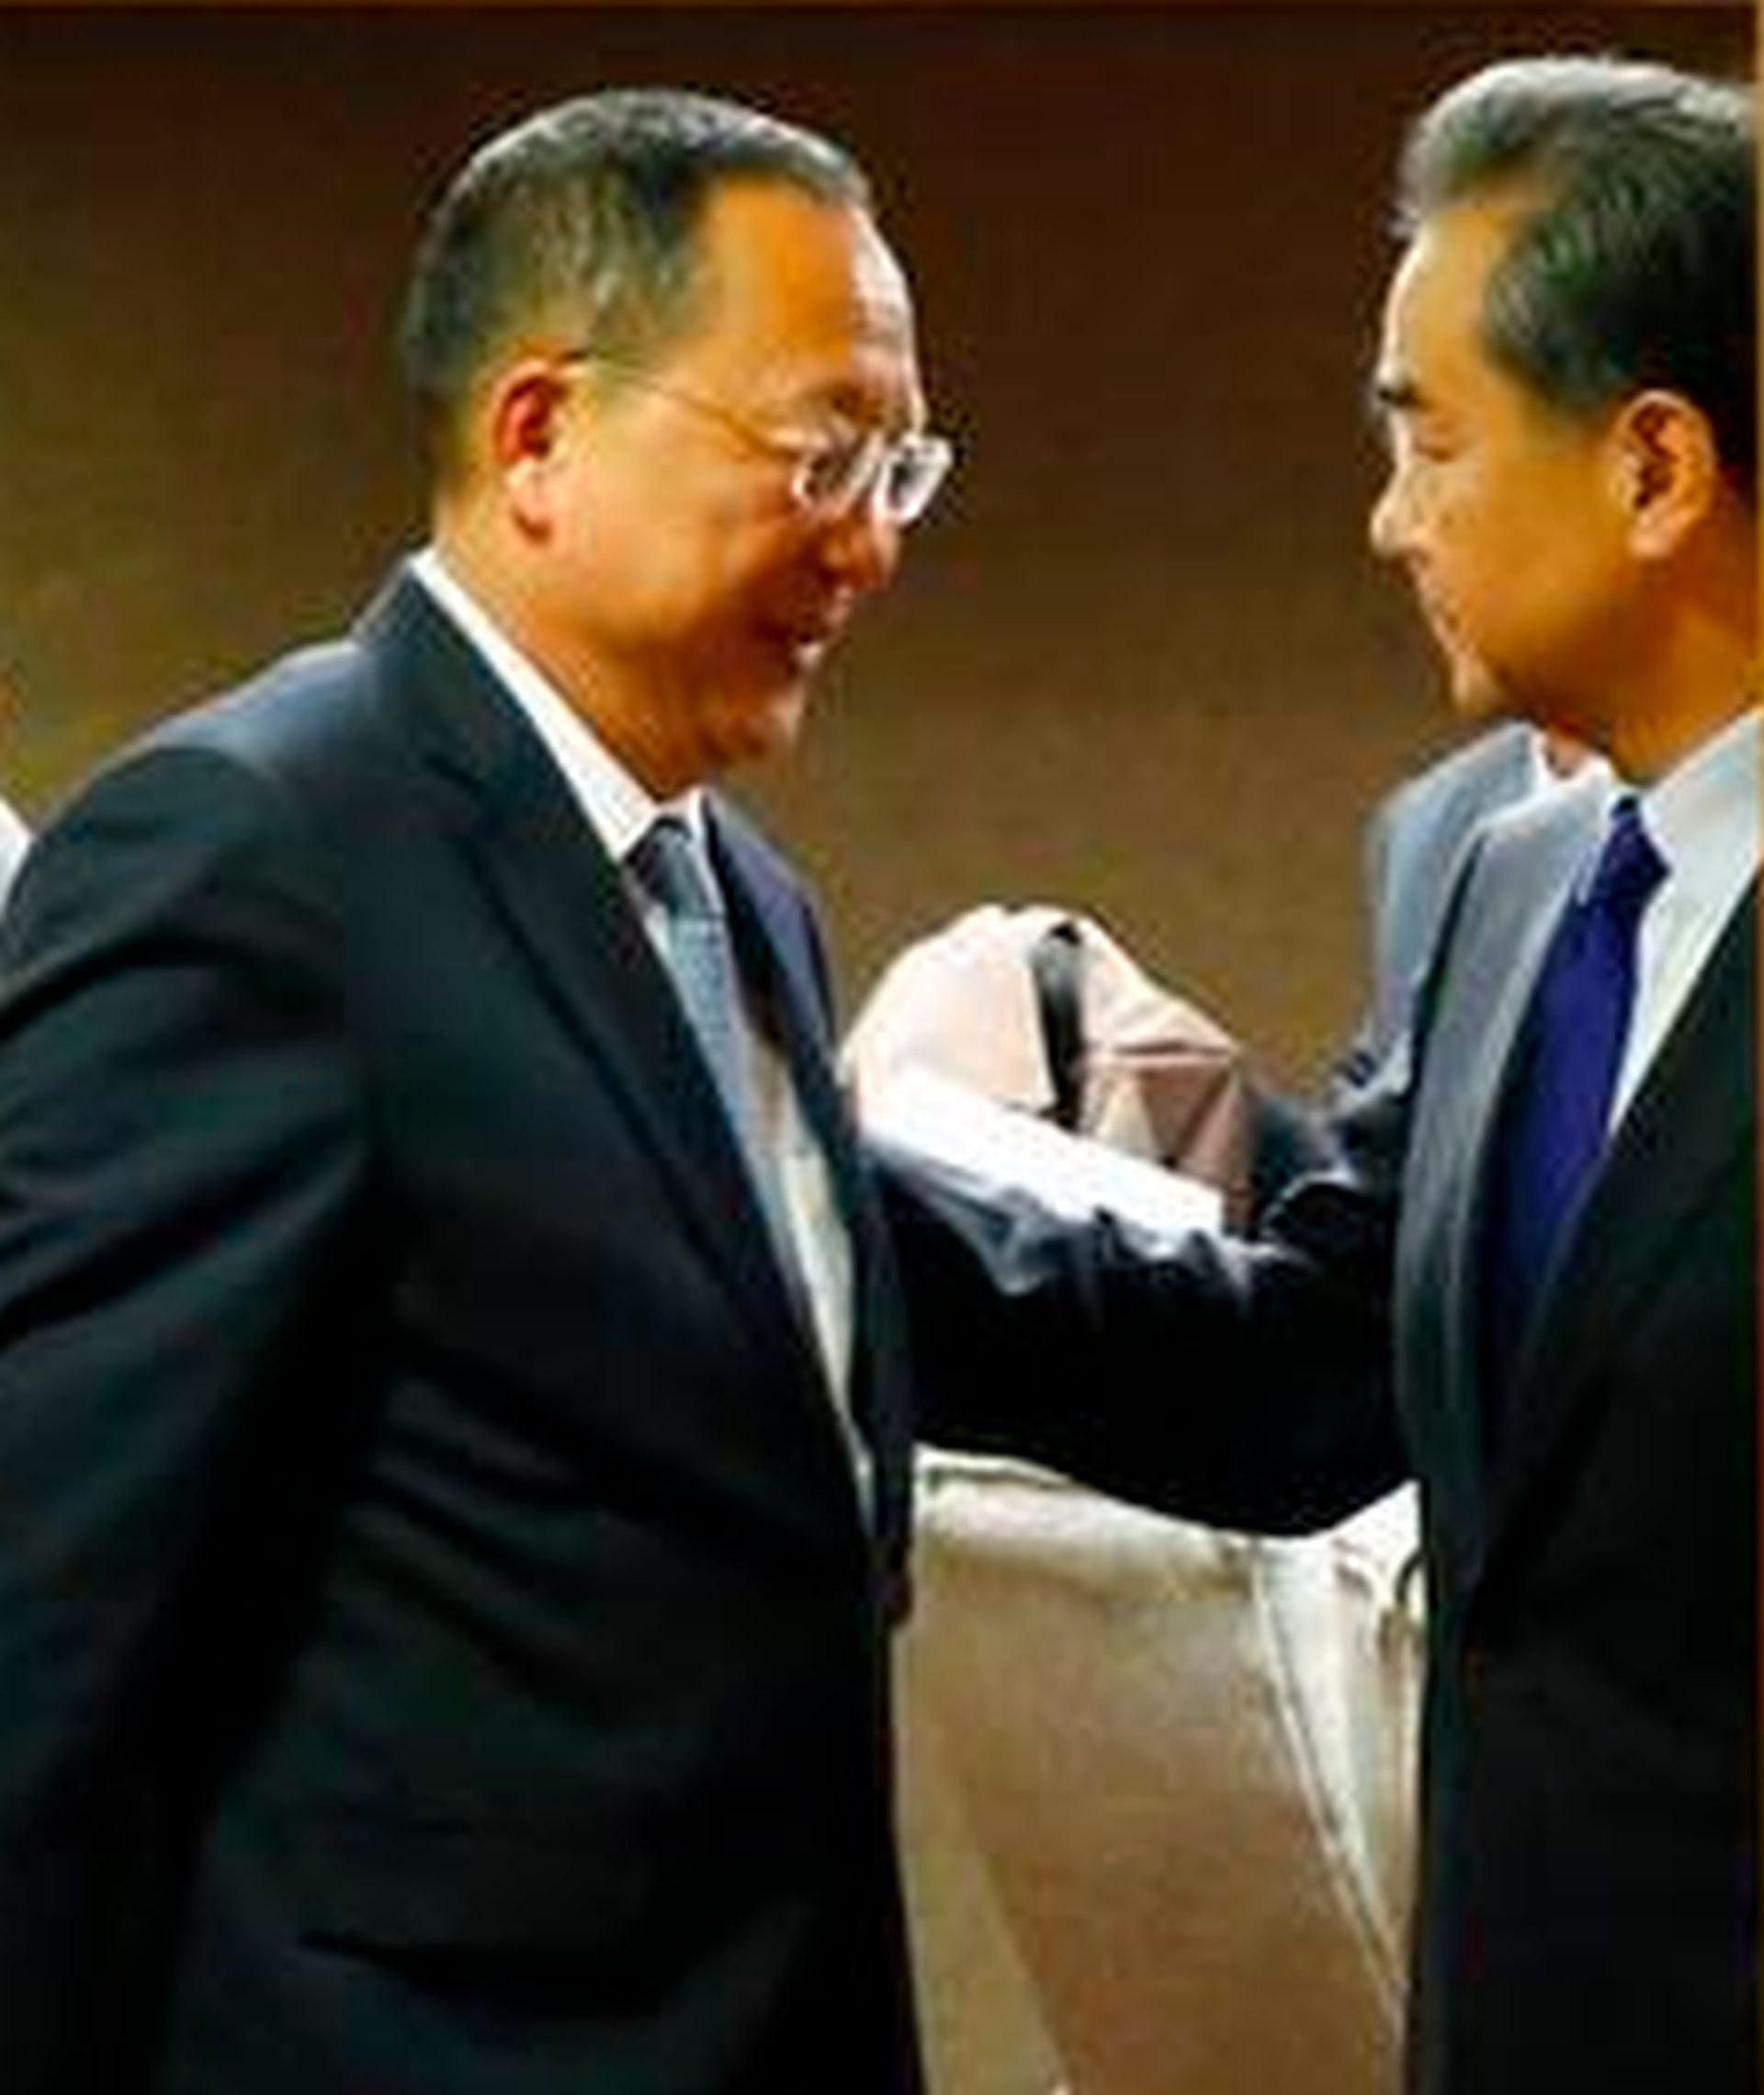 North Korean Foreign Minister Ri Yong Ho, center, bids farewell to his Chinese counterpart Wang Yi, right, following their bilateral meeting in the sidelines of the 50th ASEAN Foreign Ministers' Meeting and its Dialogue Partners Sunday, Aug. 6, 2017 in suburban Pasay city, south Manila, Philippines. AP WIREPHOTO/Bullit Marquez)